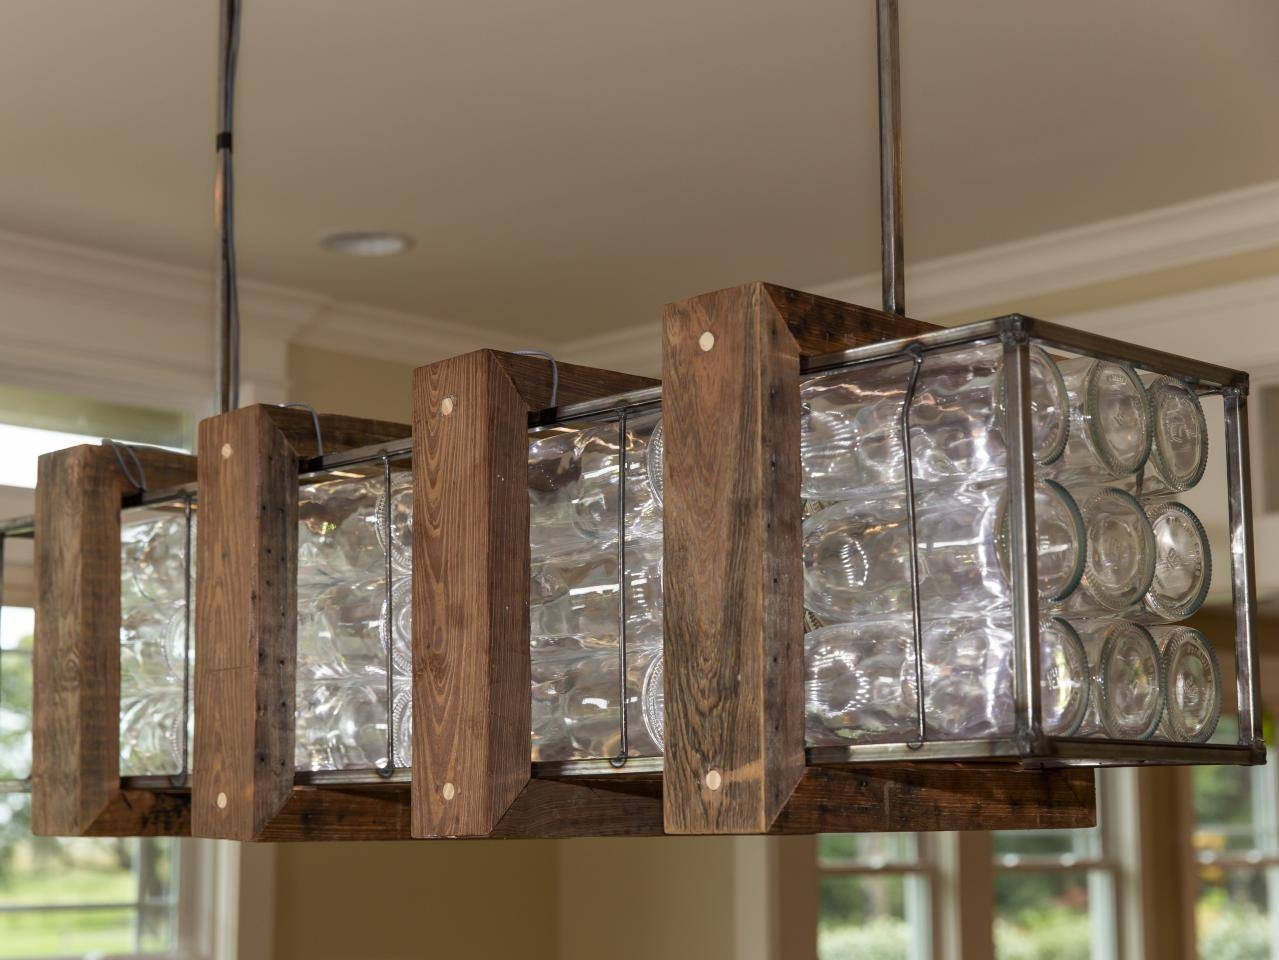 How To Build A Glass Bottle Chandelier | How-Tos | Diy with regard to Wine Glass Lights Fixtures (Image 5 of 15)